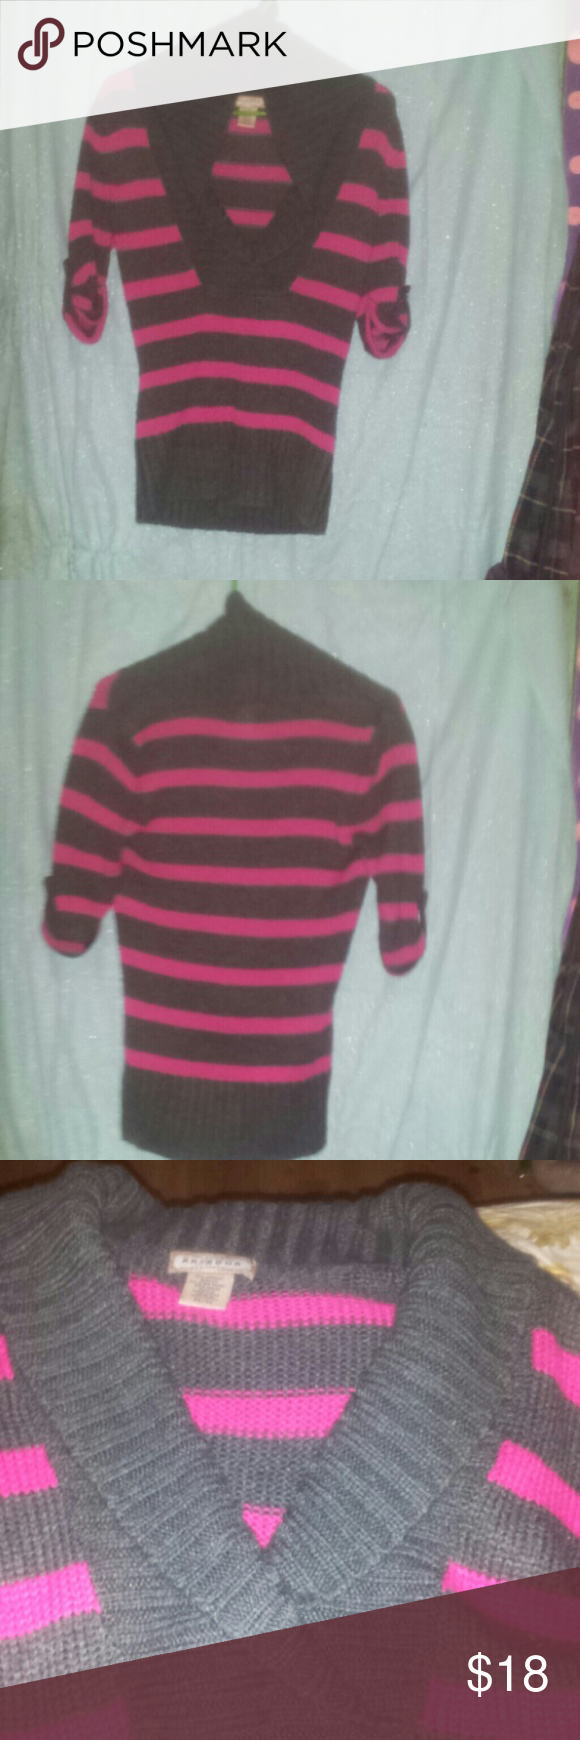 Arizona size med puffy vneck sweater | Hot pink, Charcoal and ...